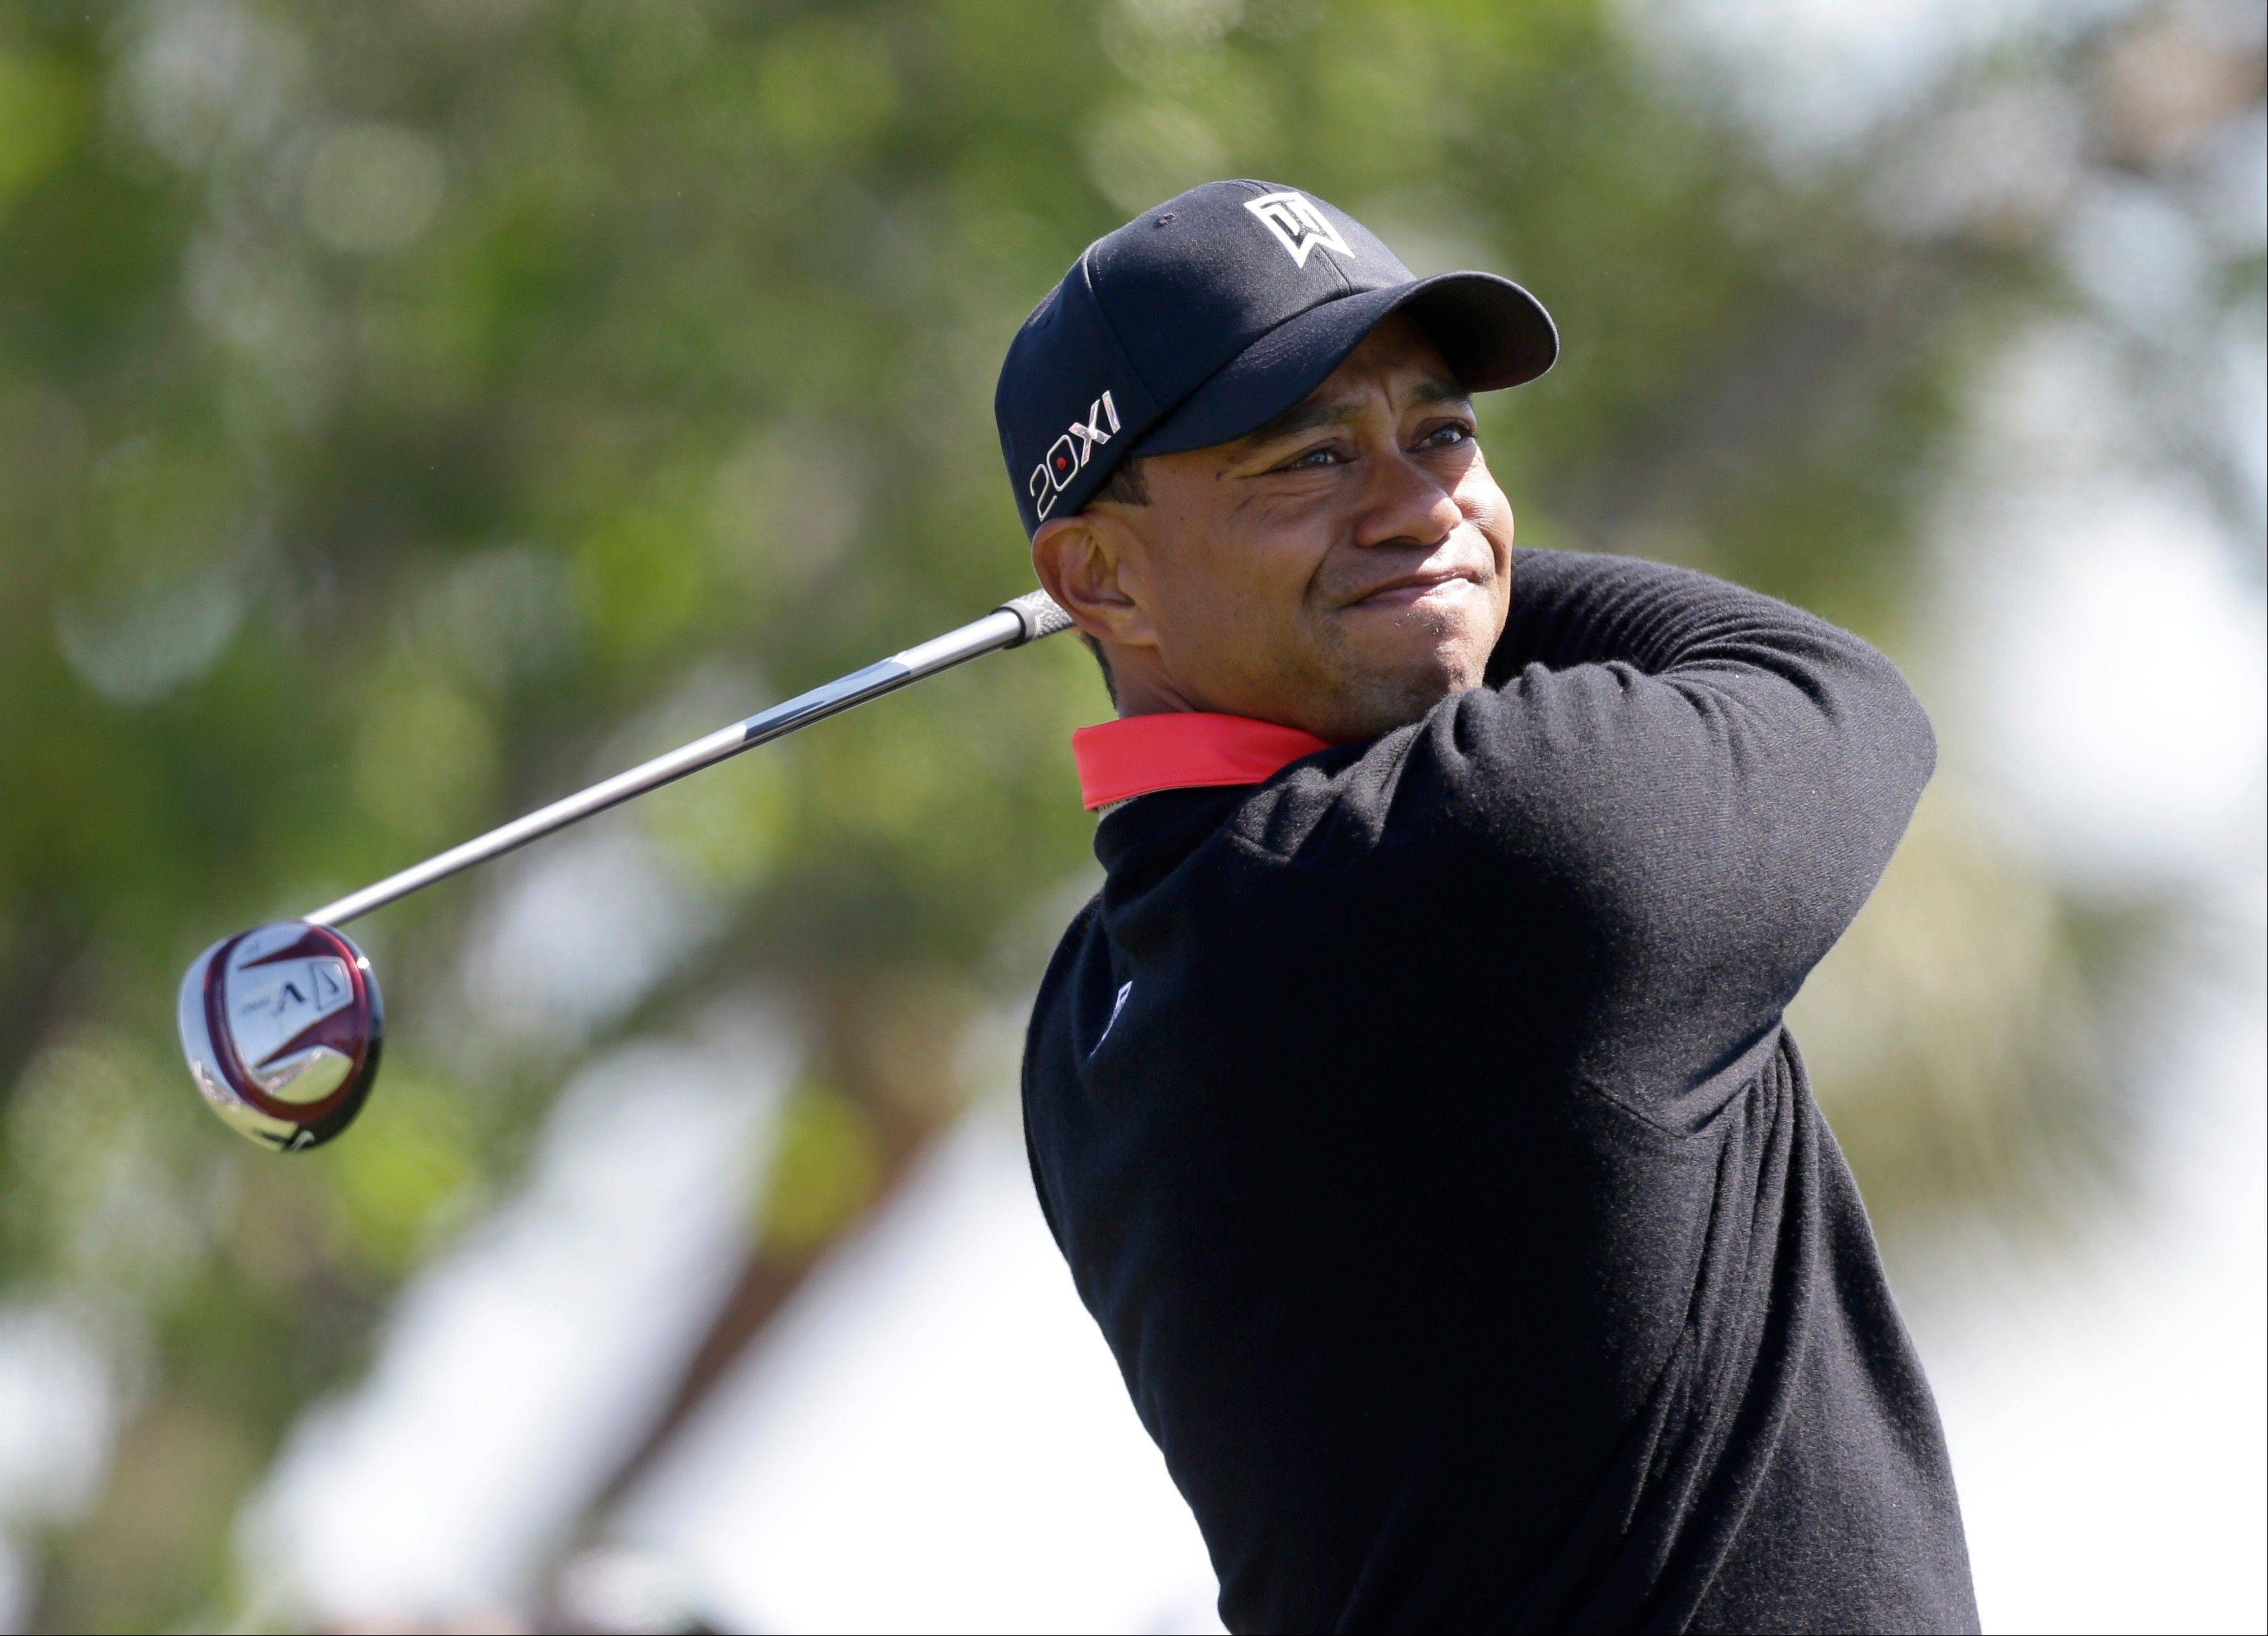 Tiger Woods tees off on the fourth tee during the final round of the Honda Classic golf tournament on Sunday, March 3, 2013, in Palm Beach Gardens, Fla. Retired golfer Jack Nicklaus says he thinks Woods can break his record, but he better get to it.